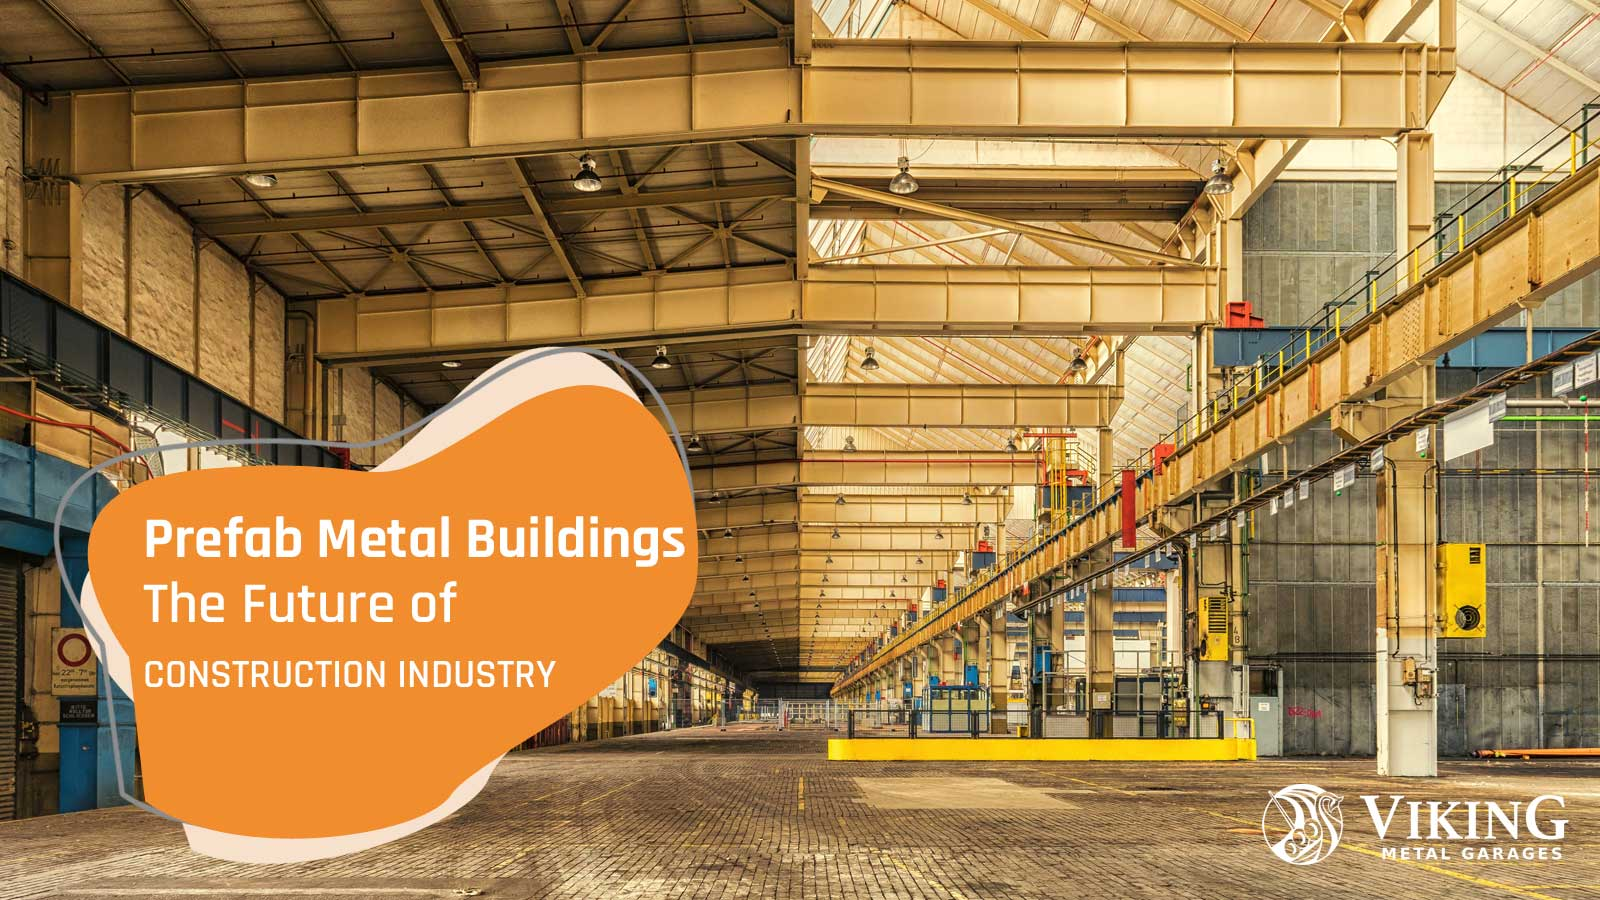 Prefab Metal Buildings- The Future of Construction Industry